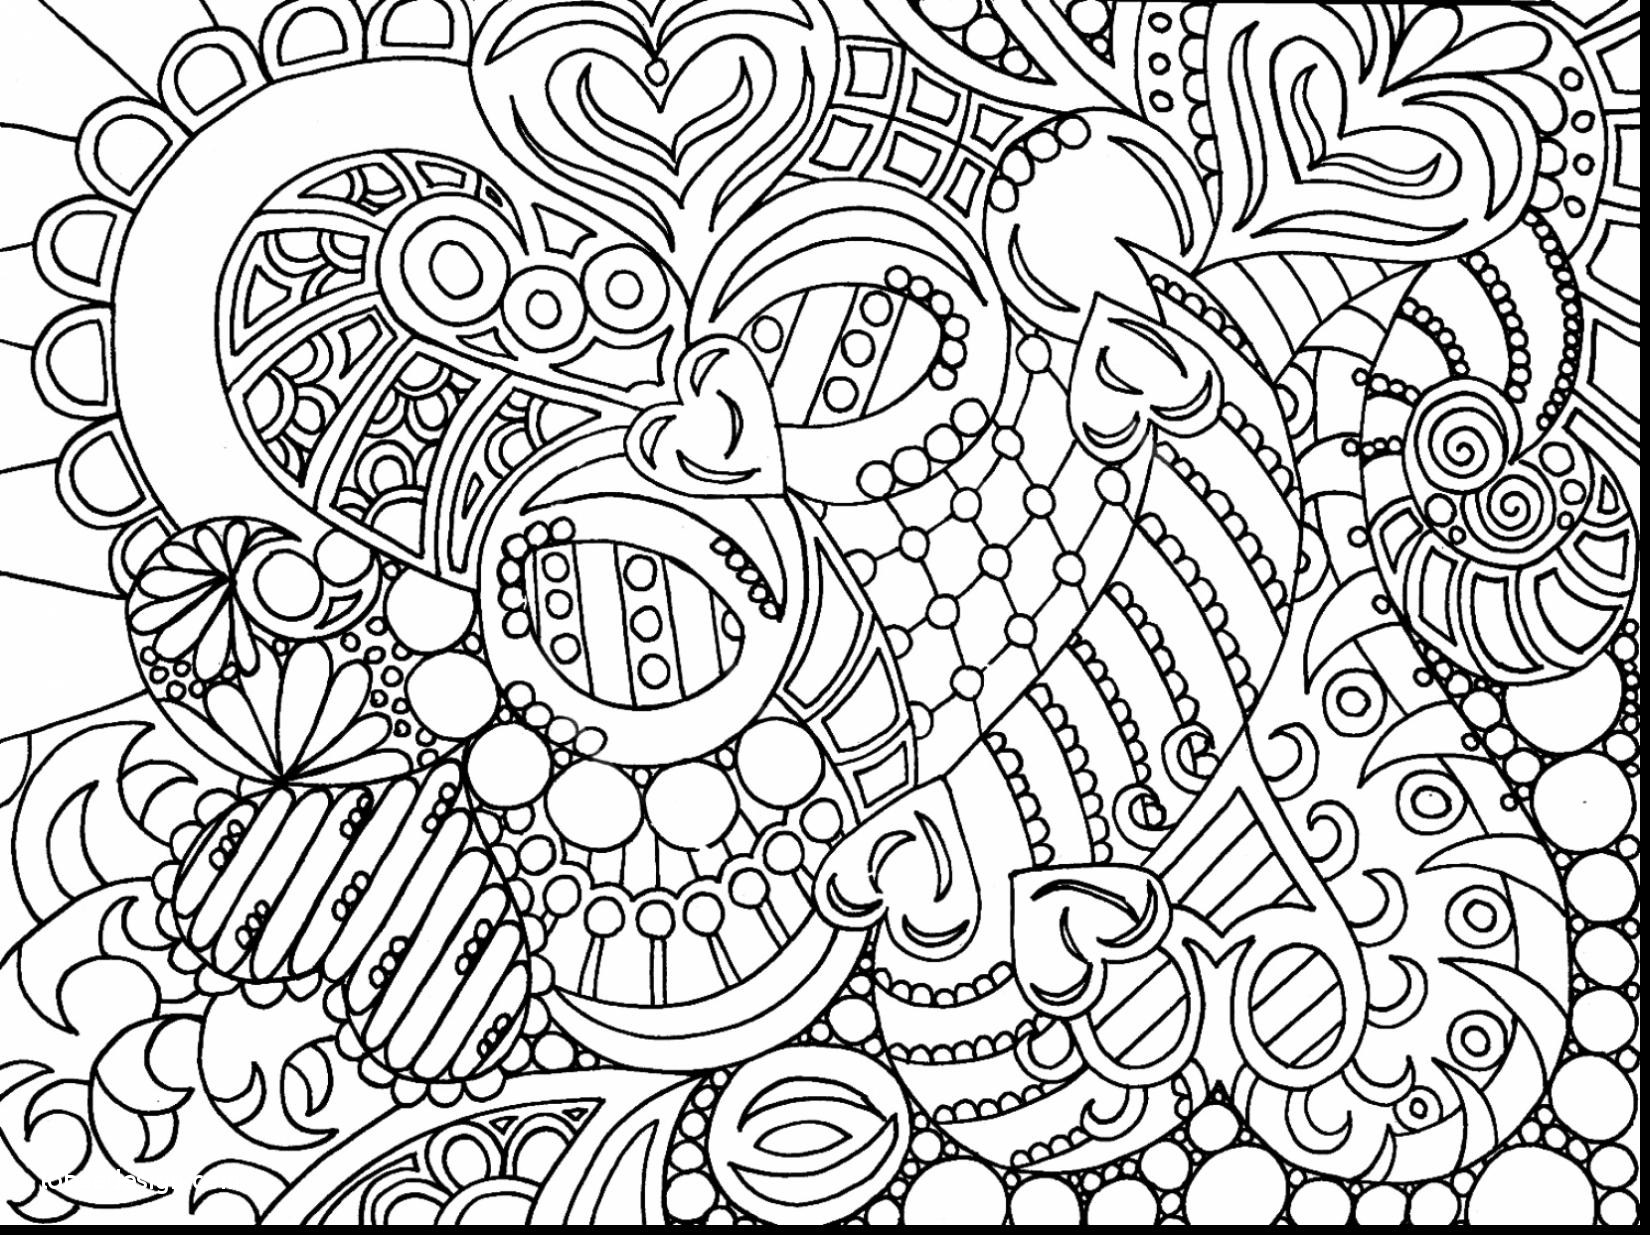 Coloring Pages for Teens ⋆ coloring.rocks!